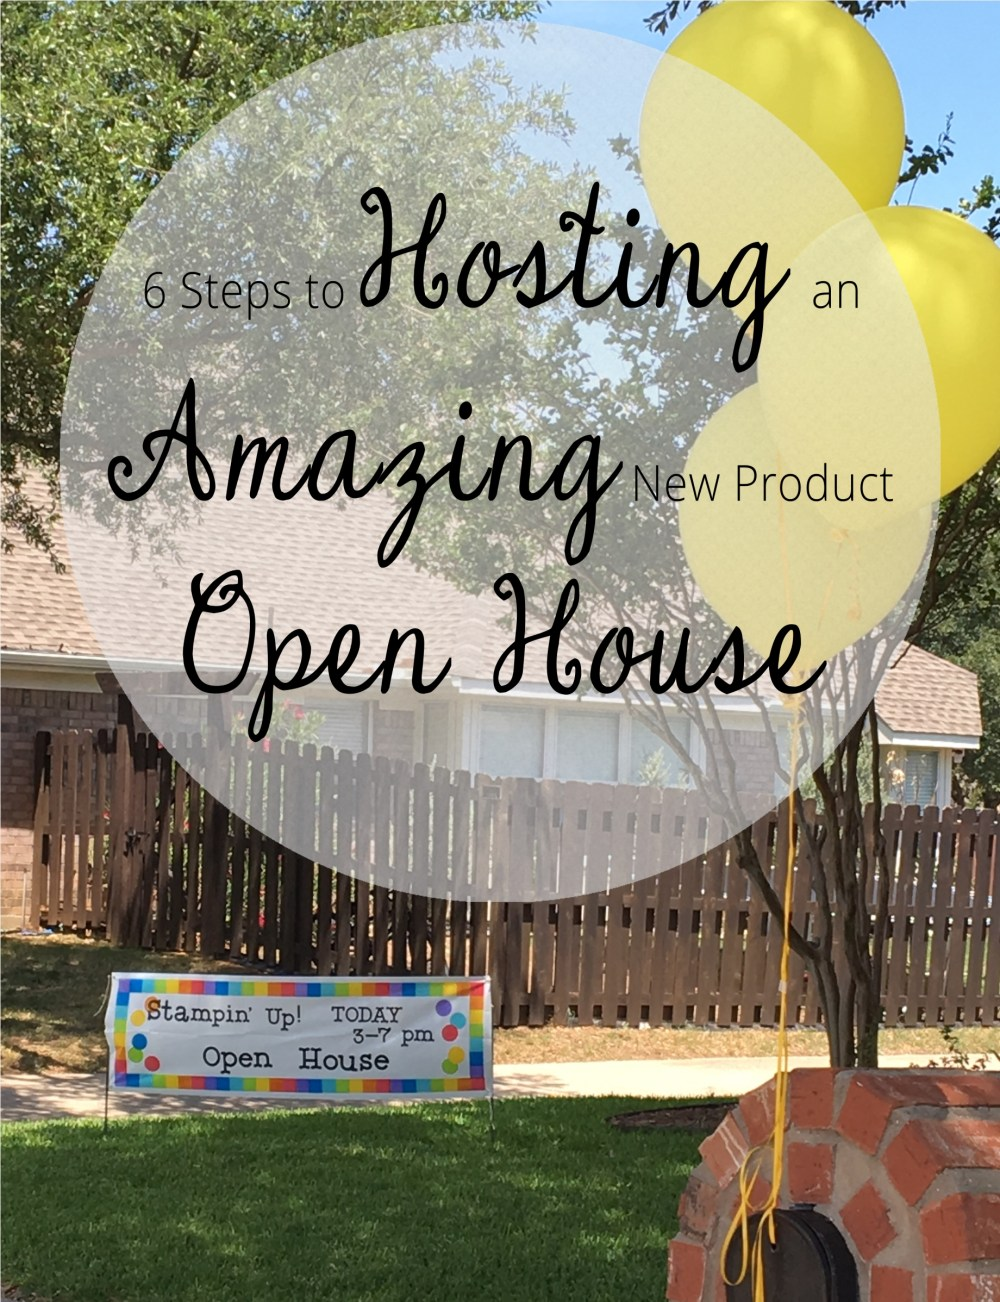 6 Steps to Hosting Open House